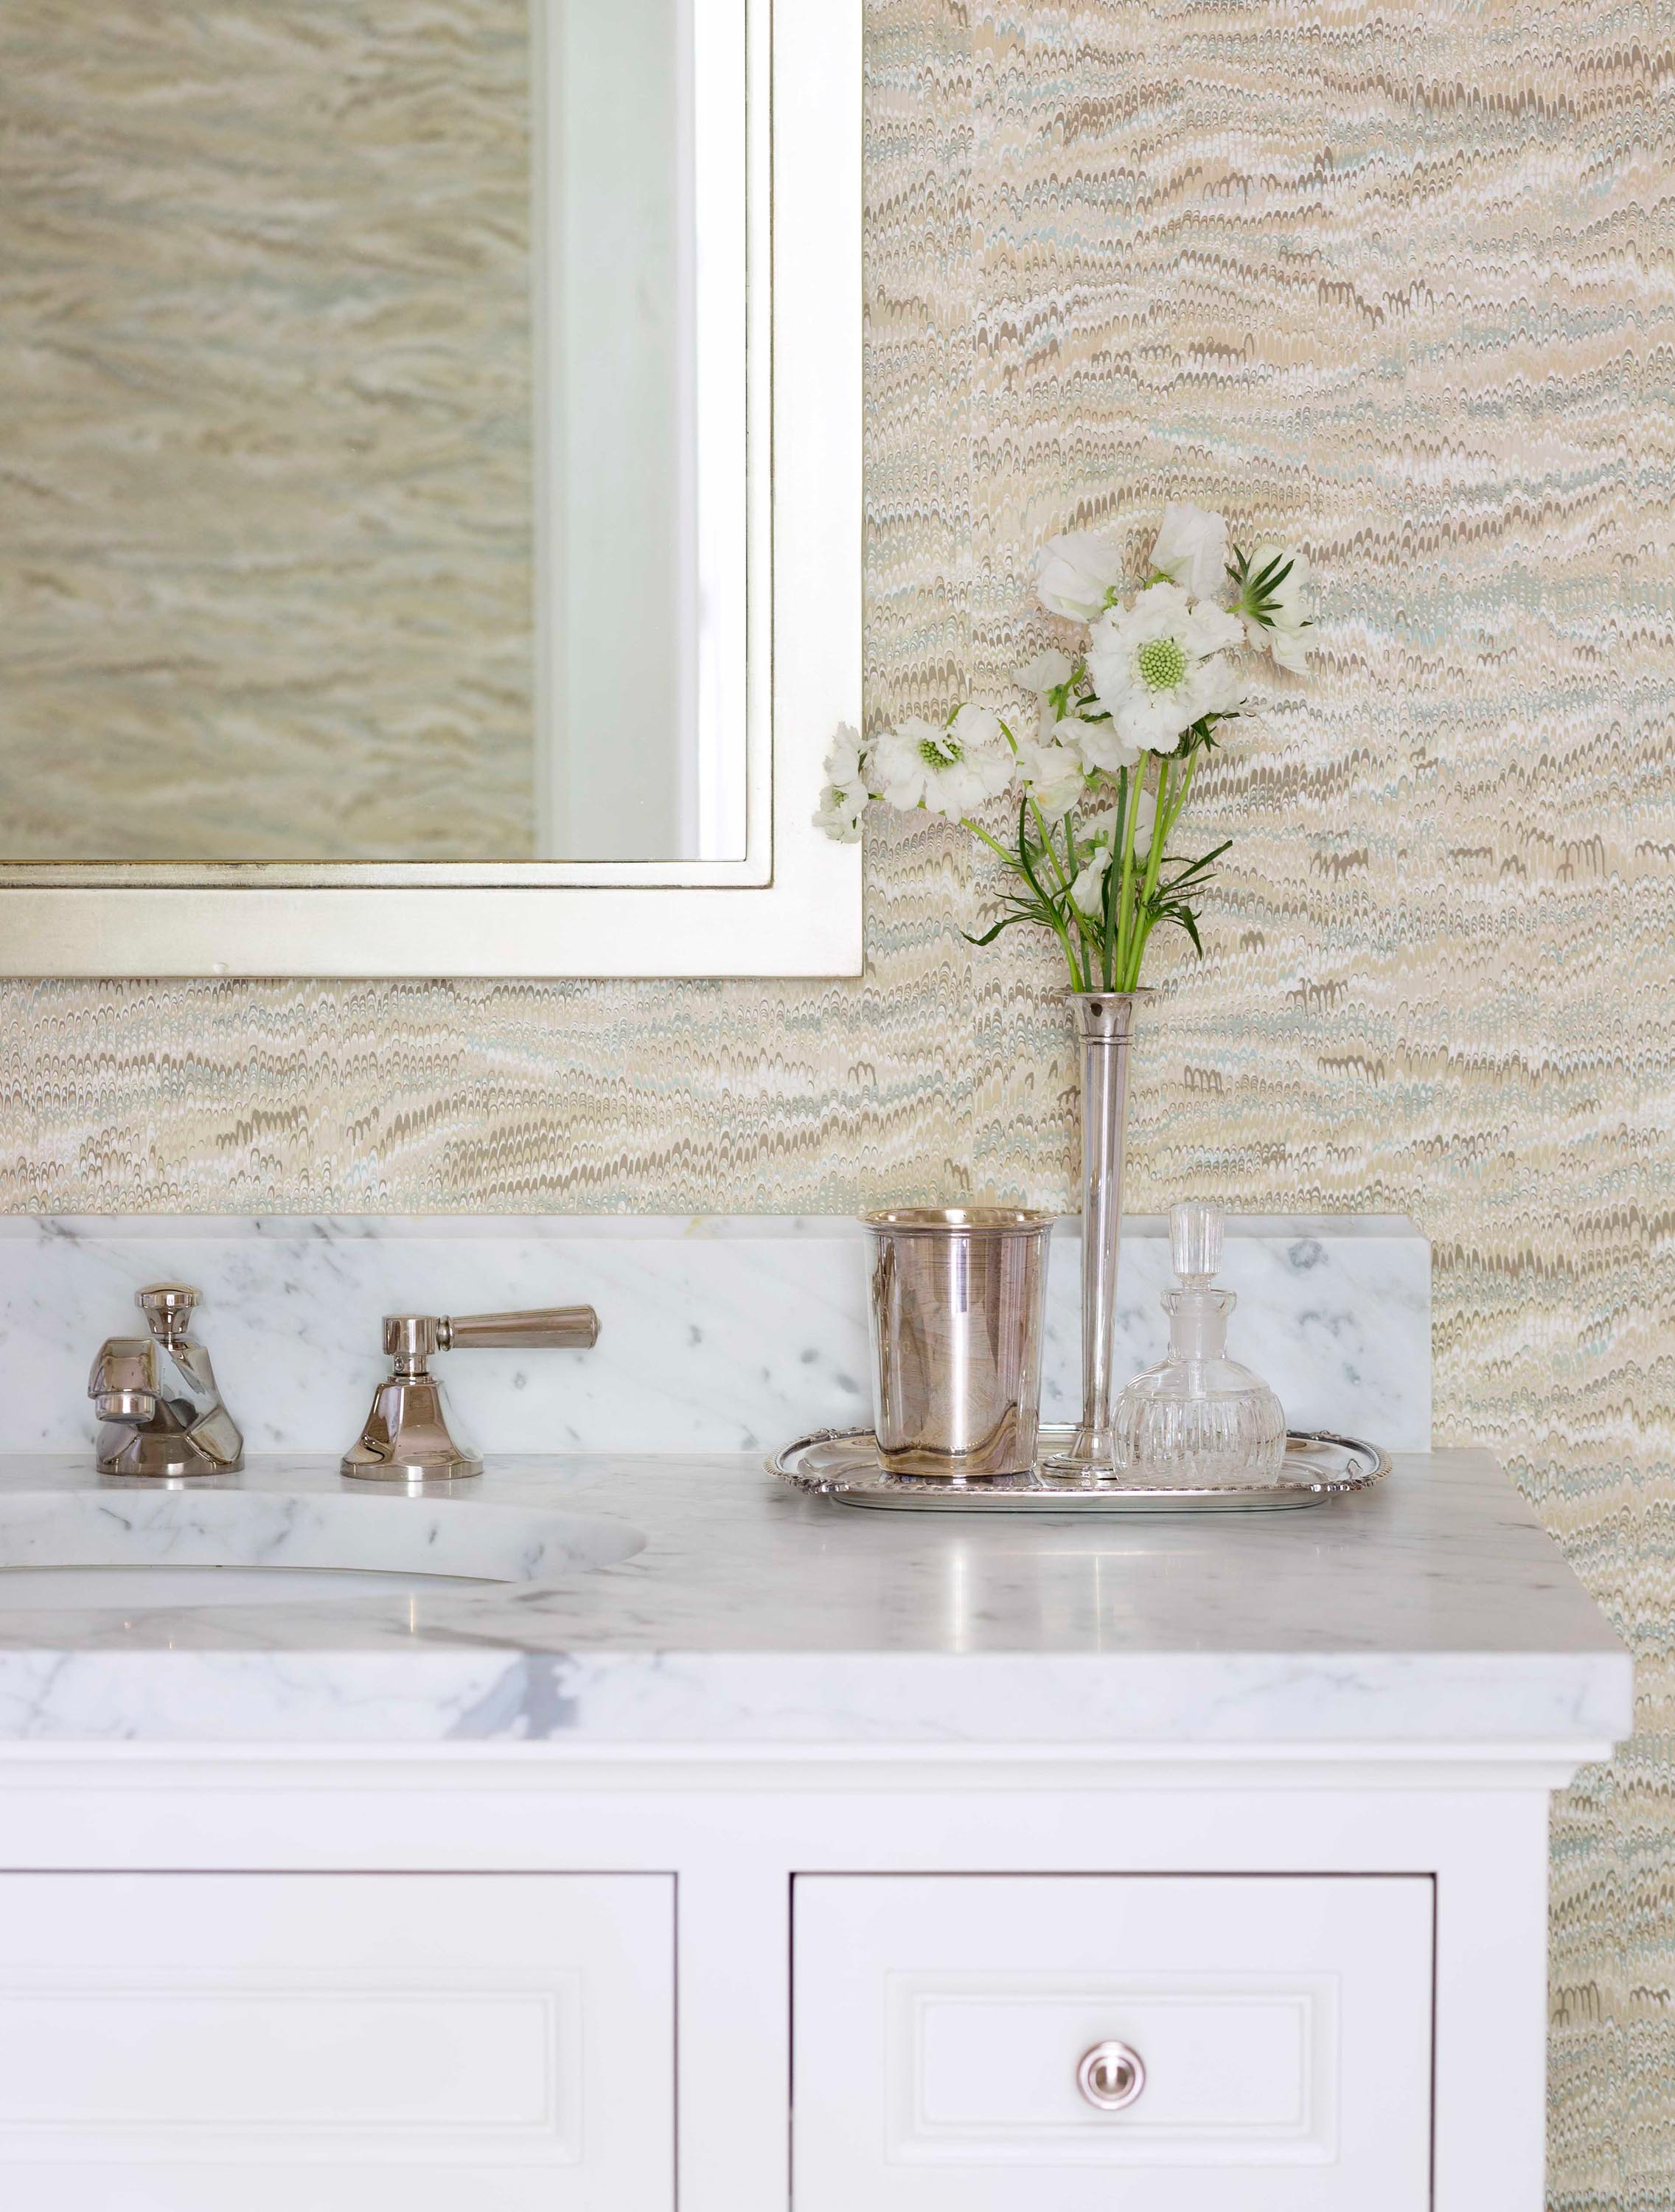 White framed mirror mounted above sink in bathroom